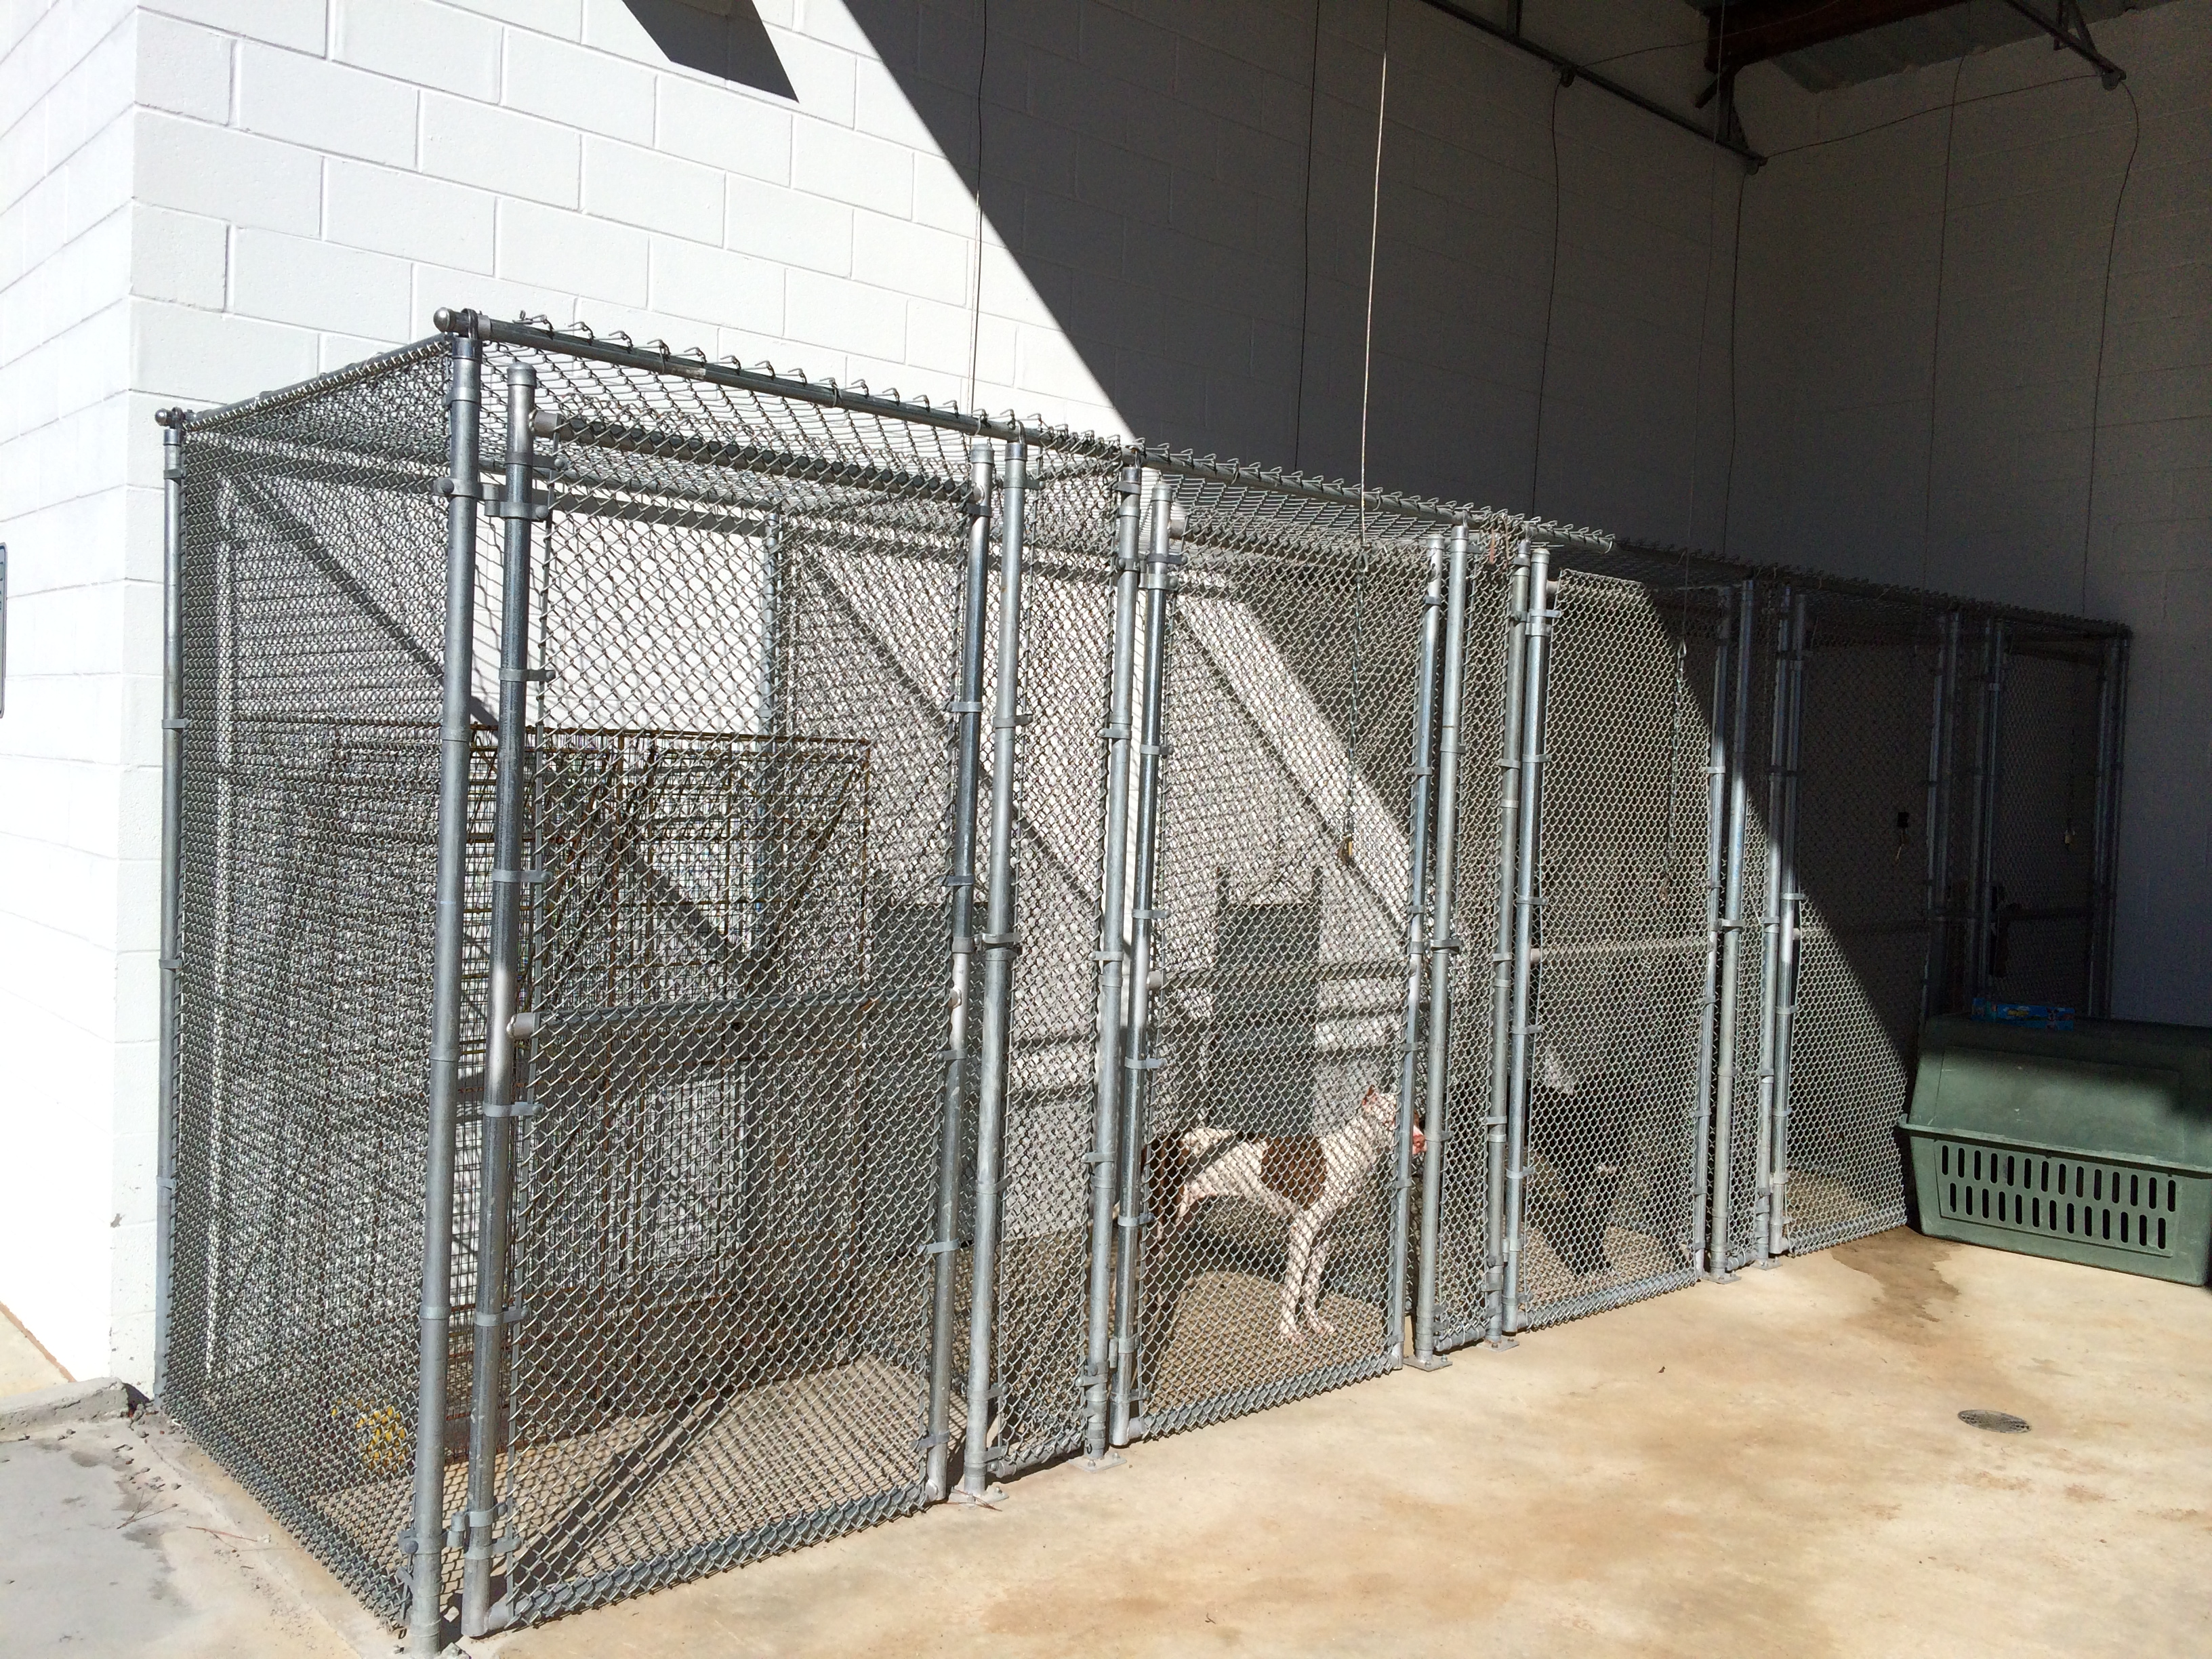 Outside view of Shelter cages